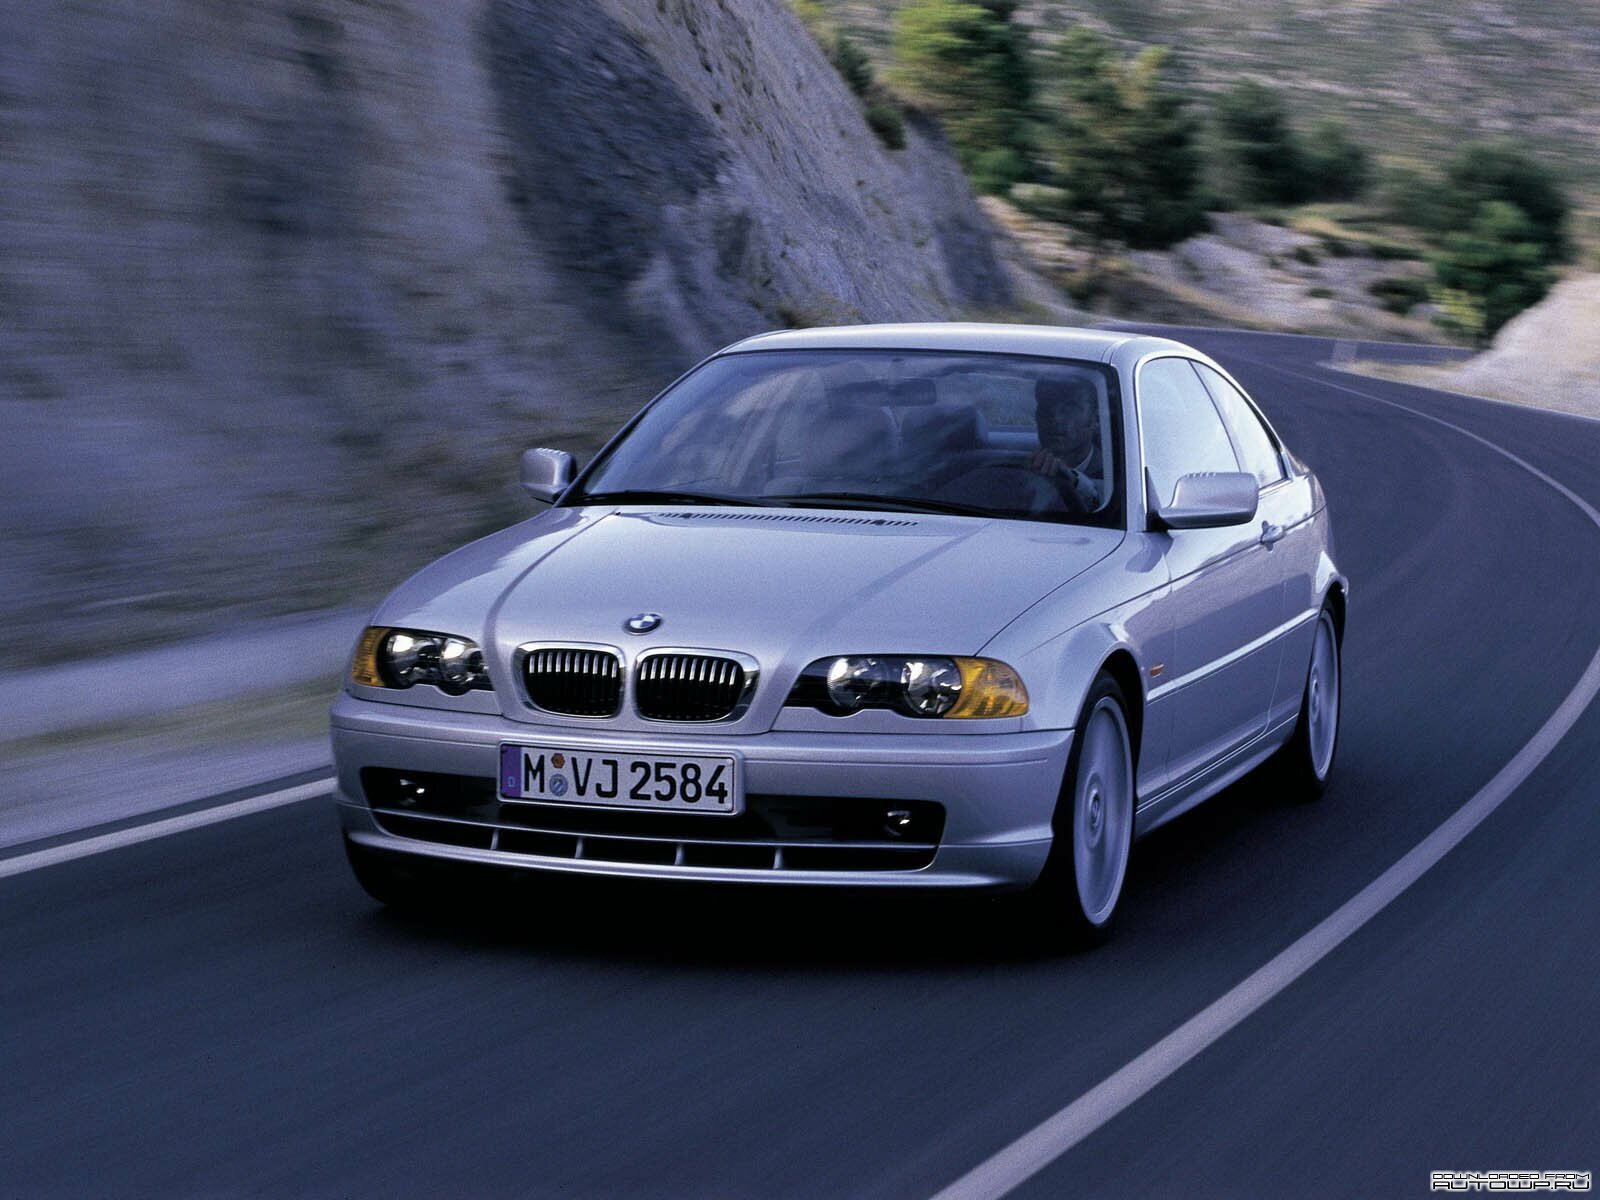 BMW Series E Coupe Picture BMW Photo Gallery - Bmw 3 series e46